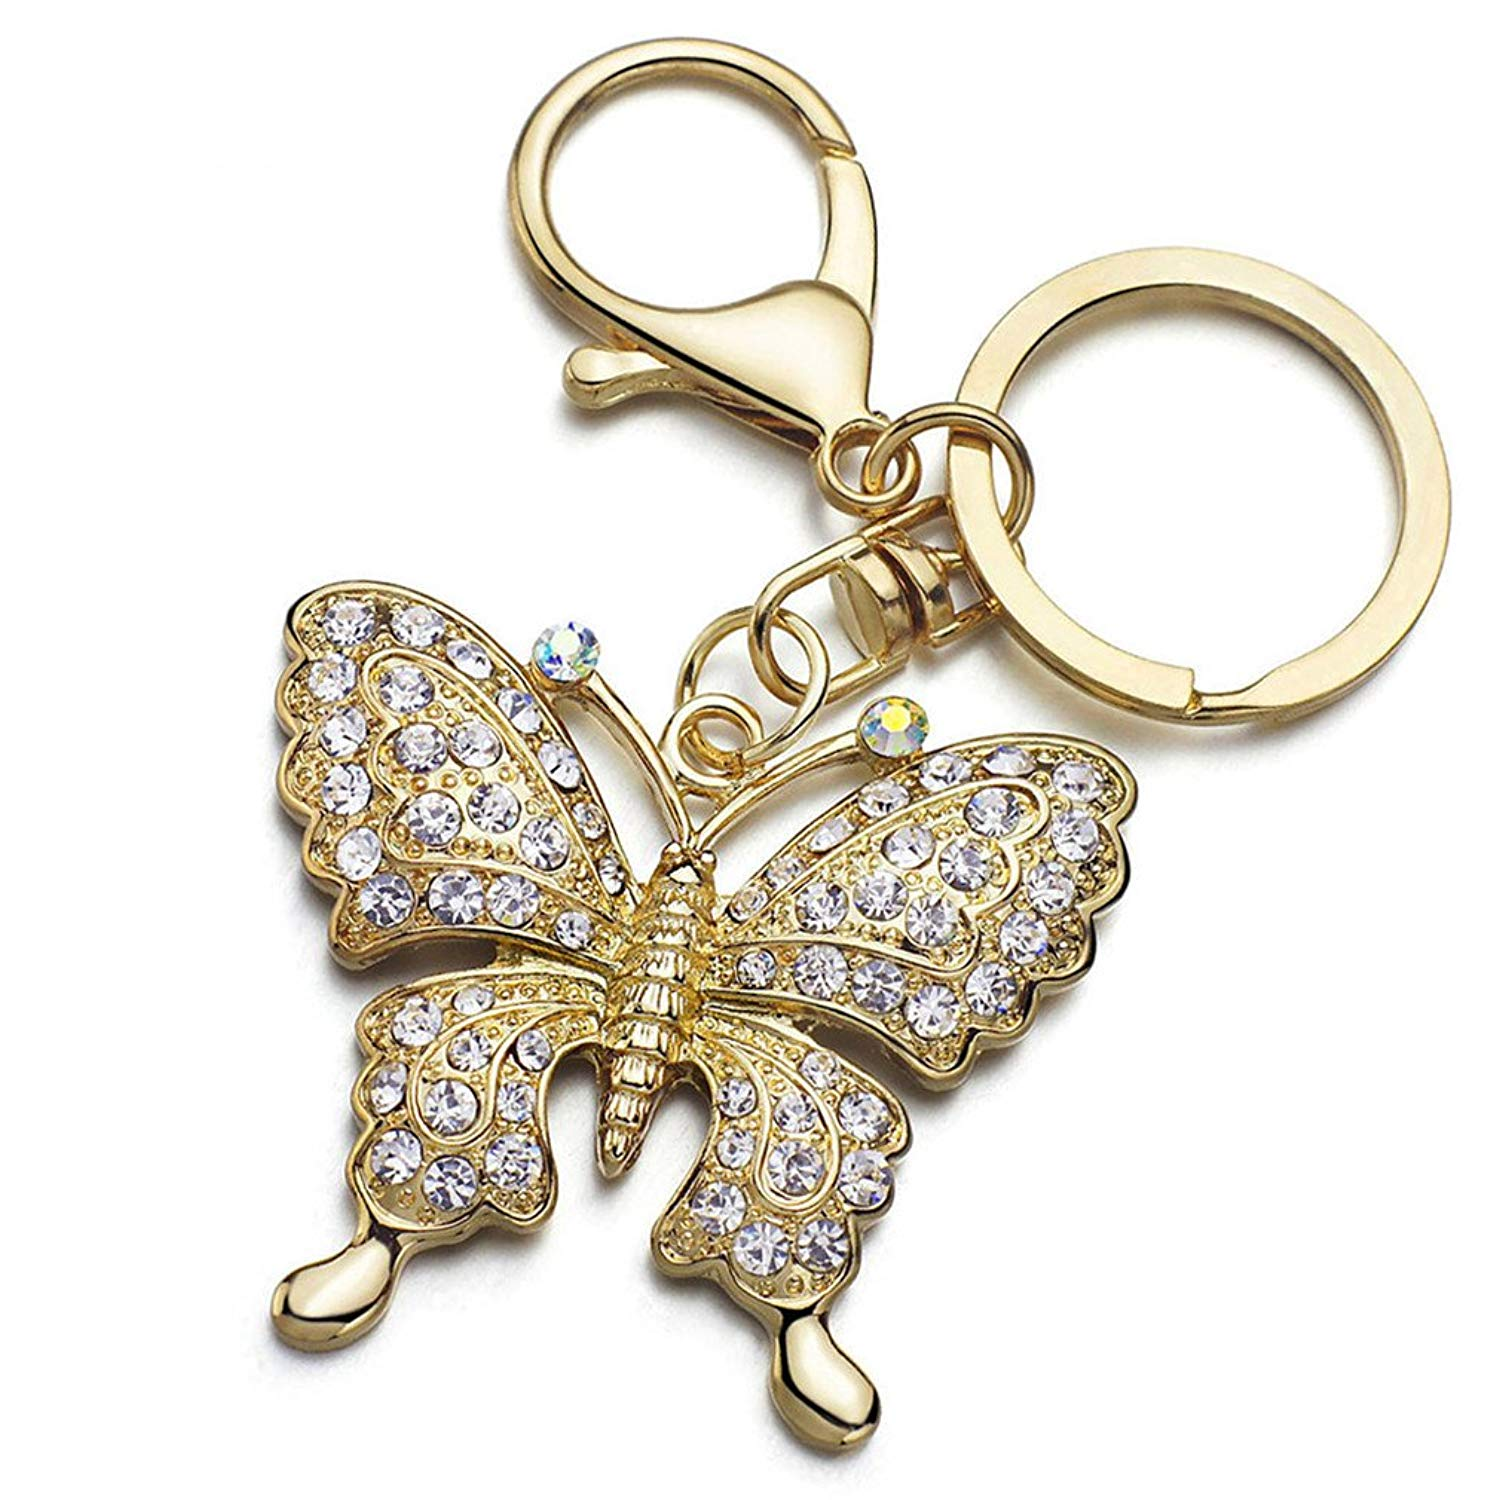 5f4cd84ee71 Cheap Crystal Keychains For Women, find Crystal Keychains For Women ...